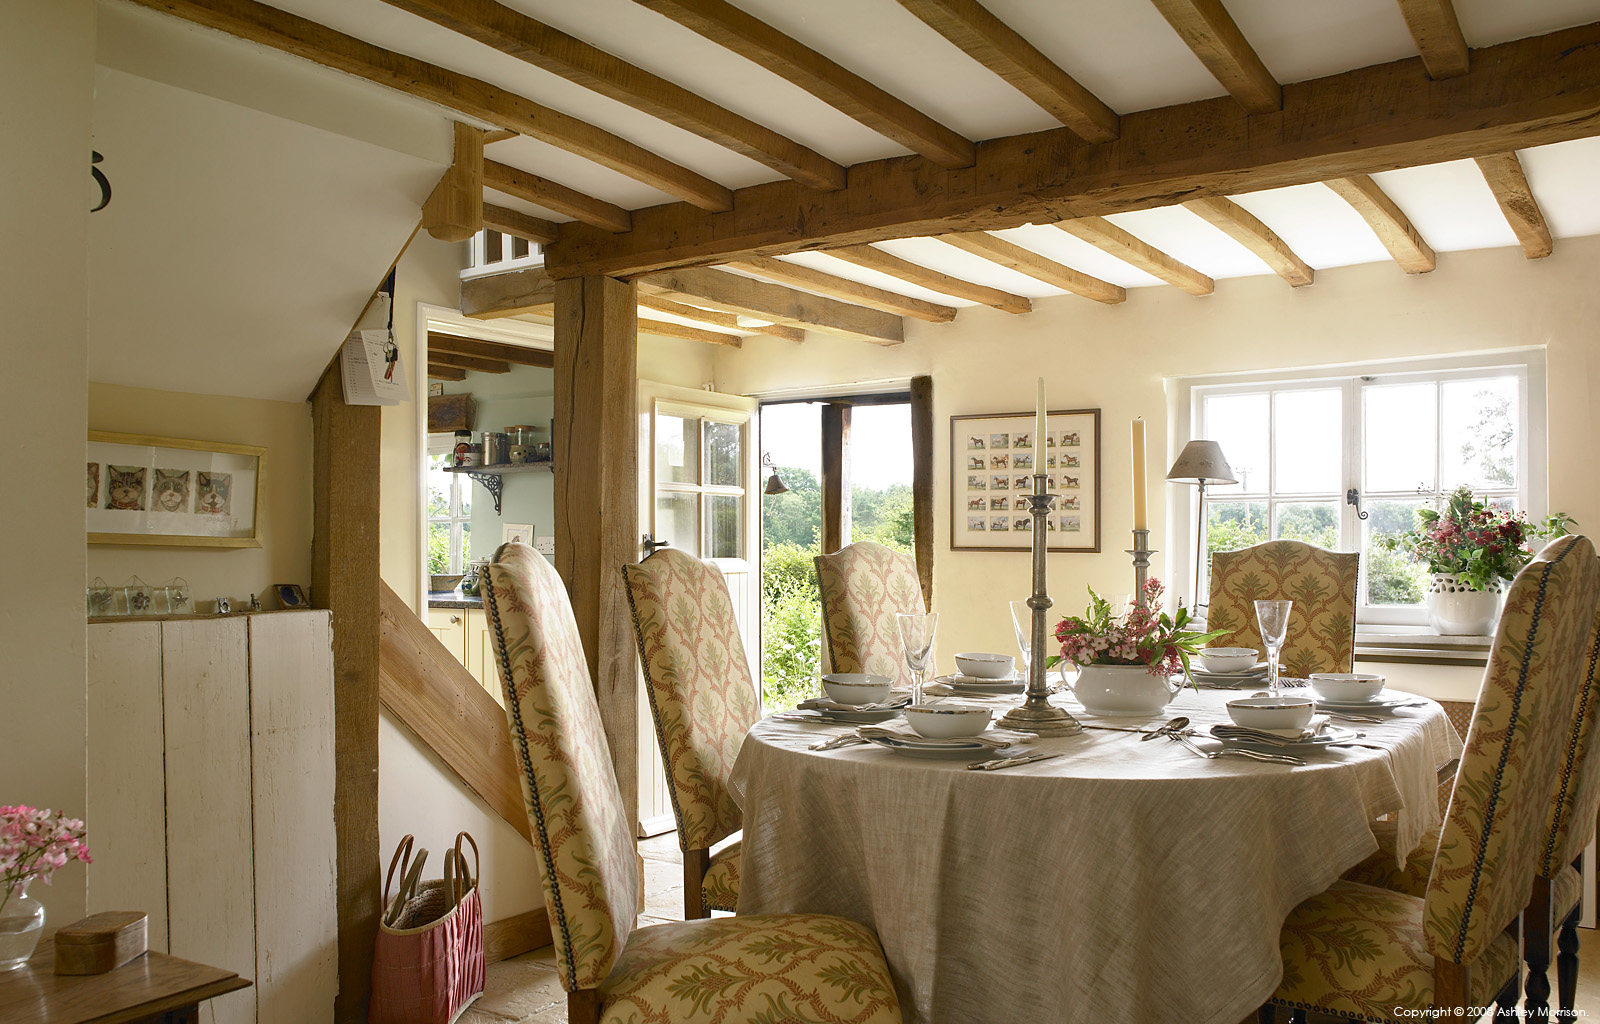 The dining room in Tracey & Andy Rosser's cottage near Checkendon in Oxfordshire.